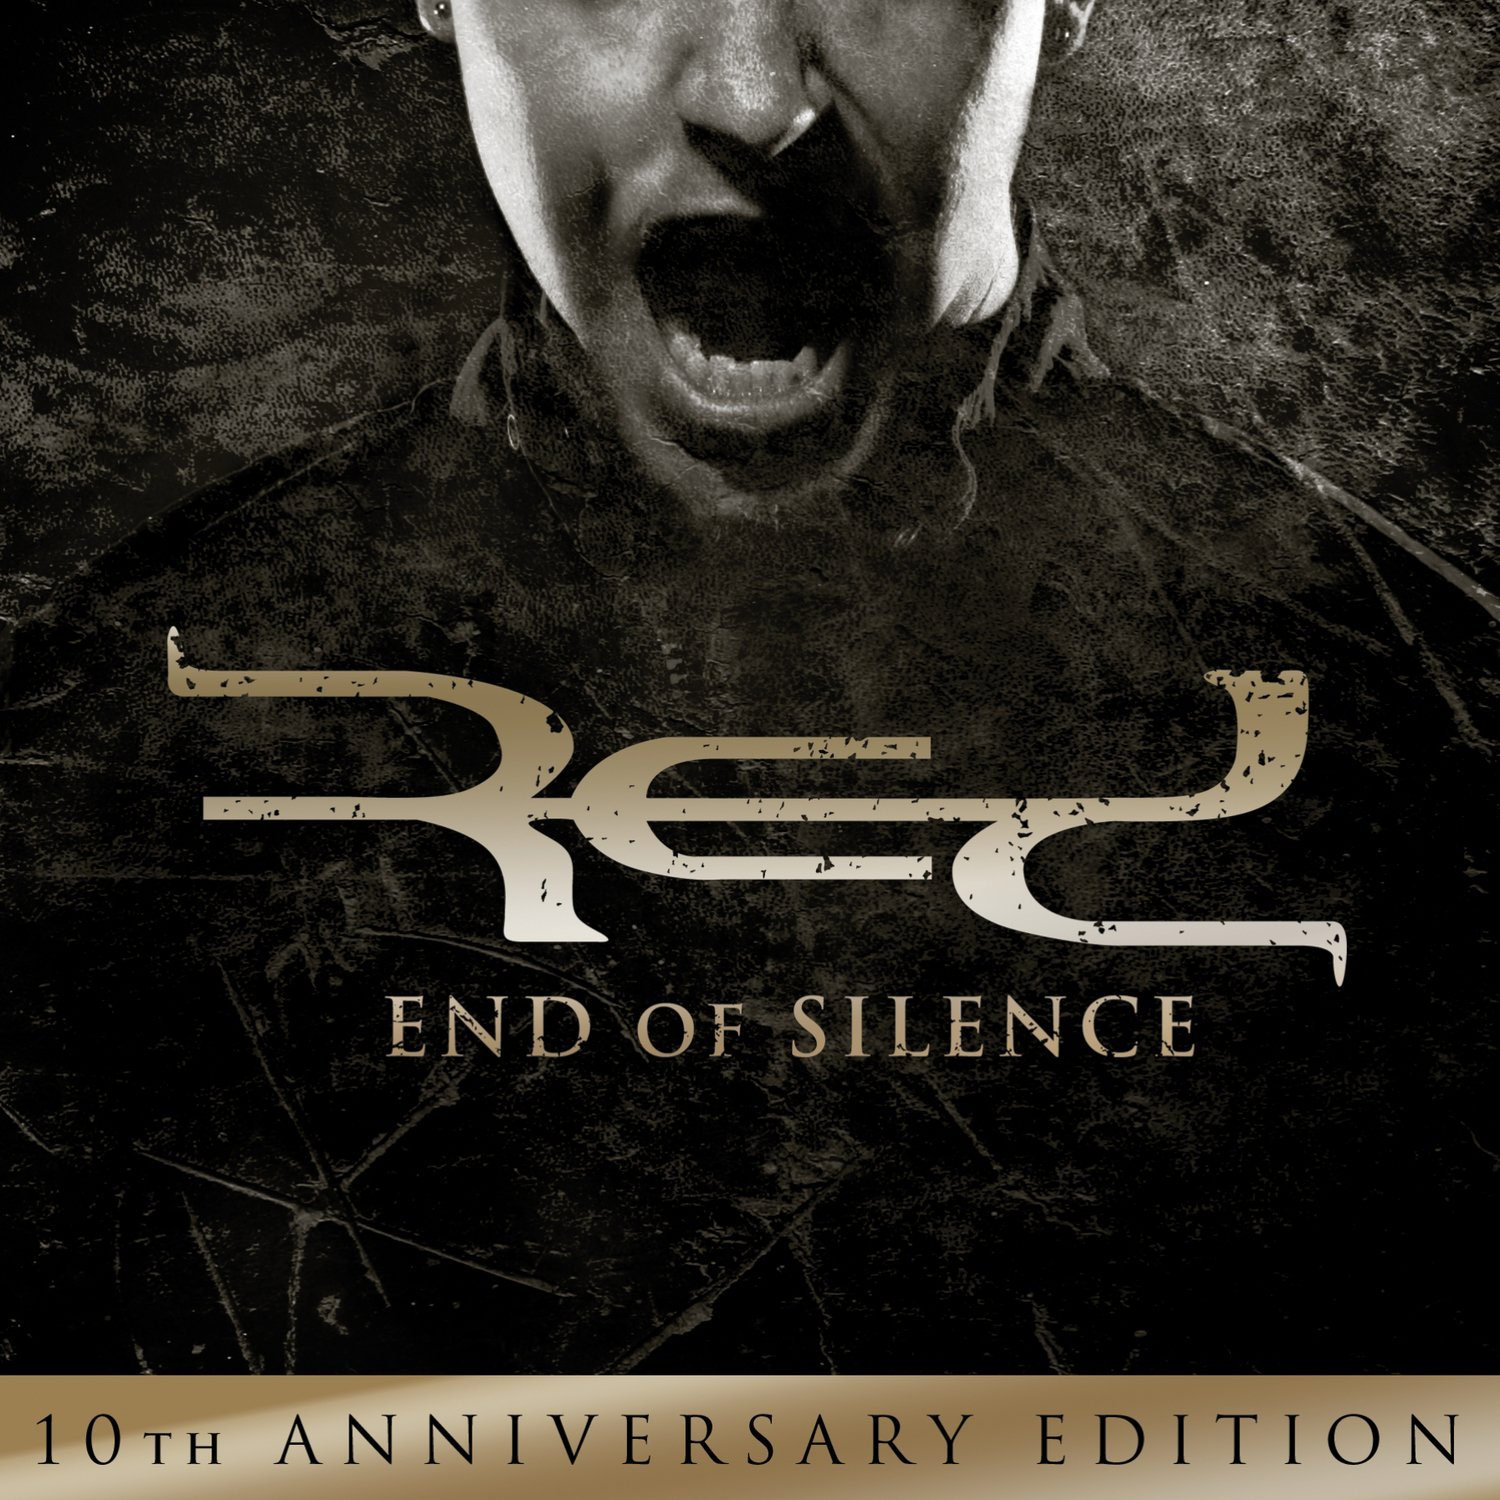 Image result for red end of silence 10th anniversary edition